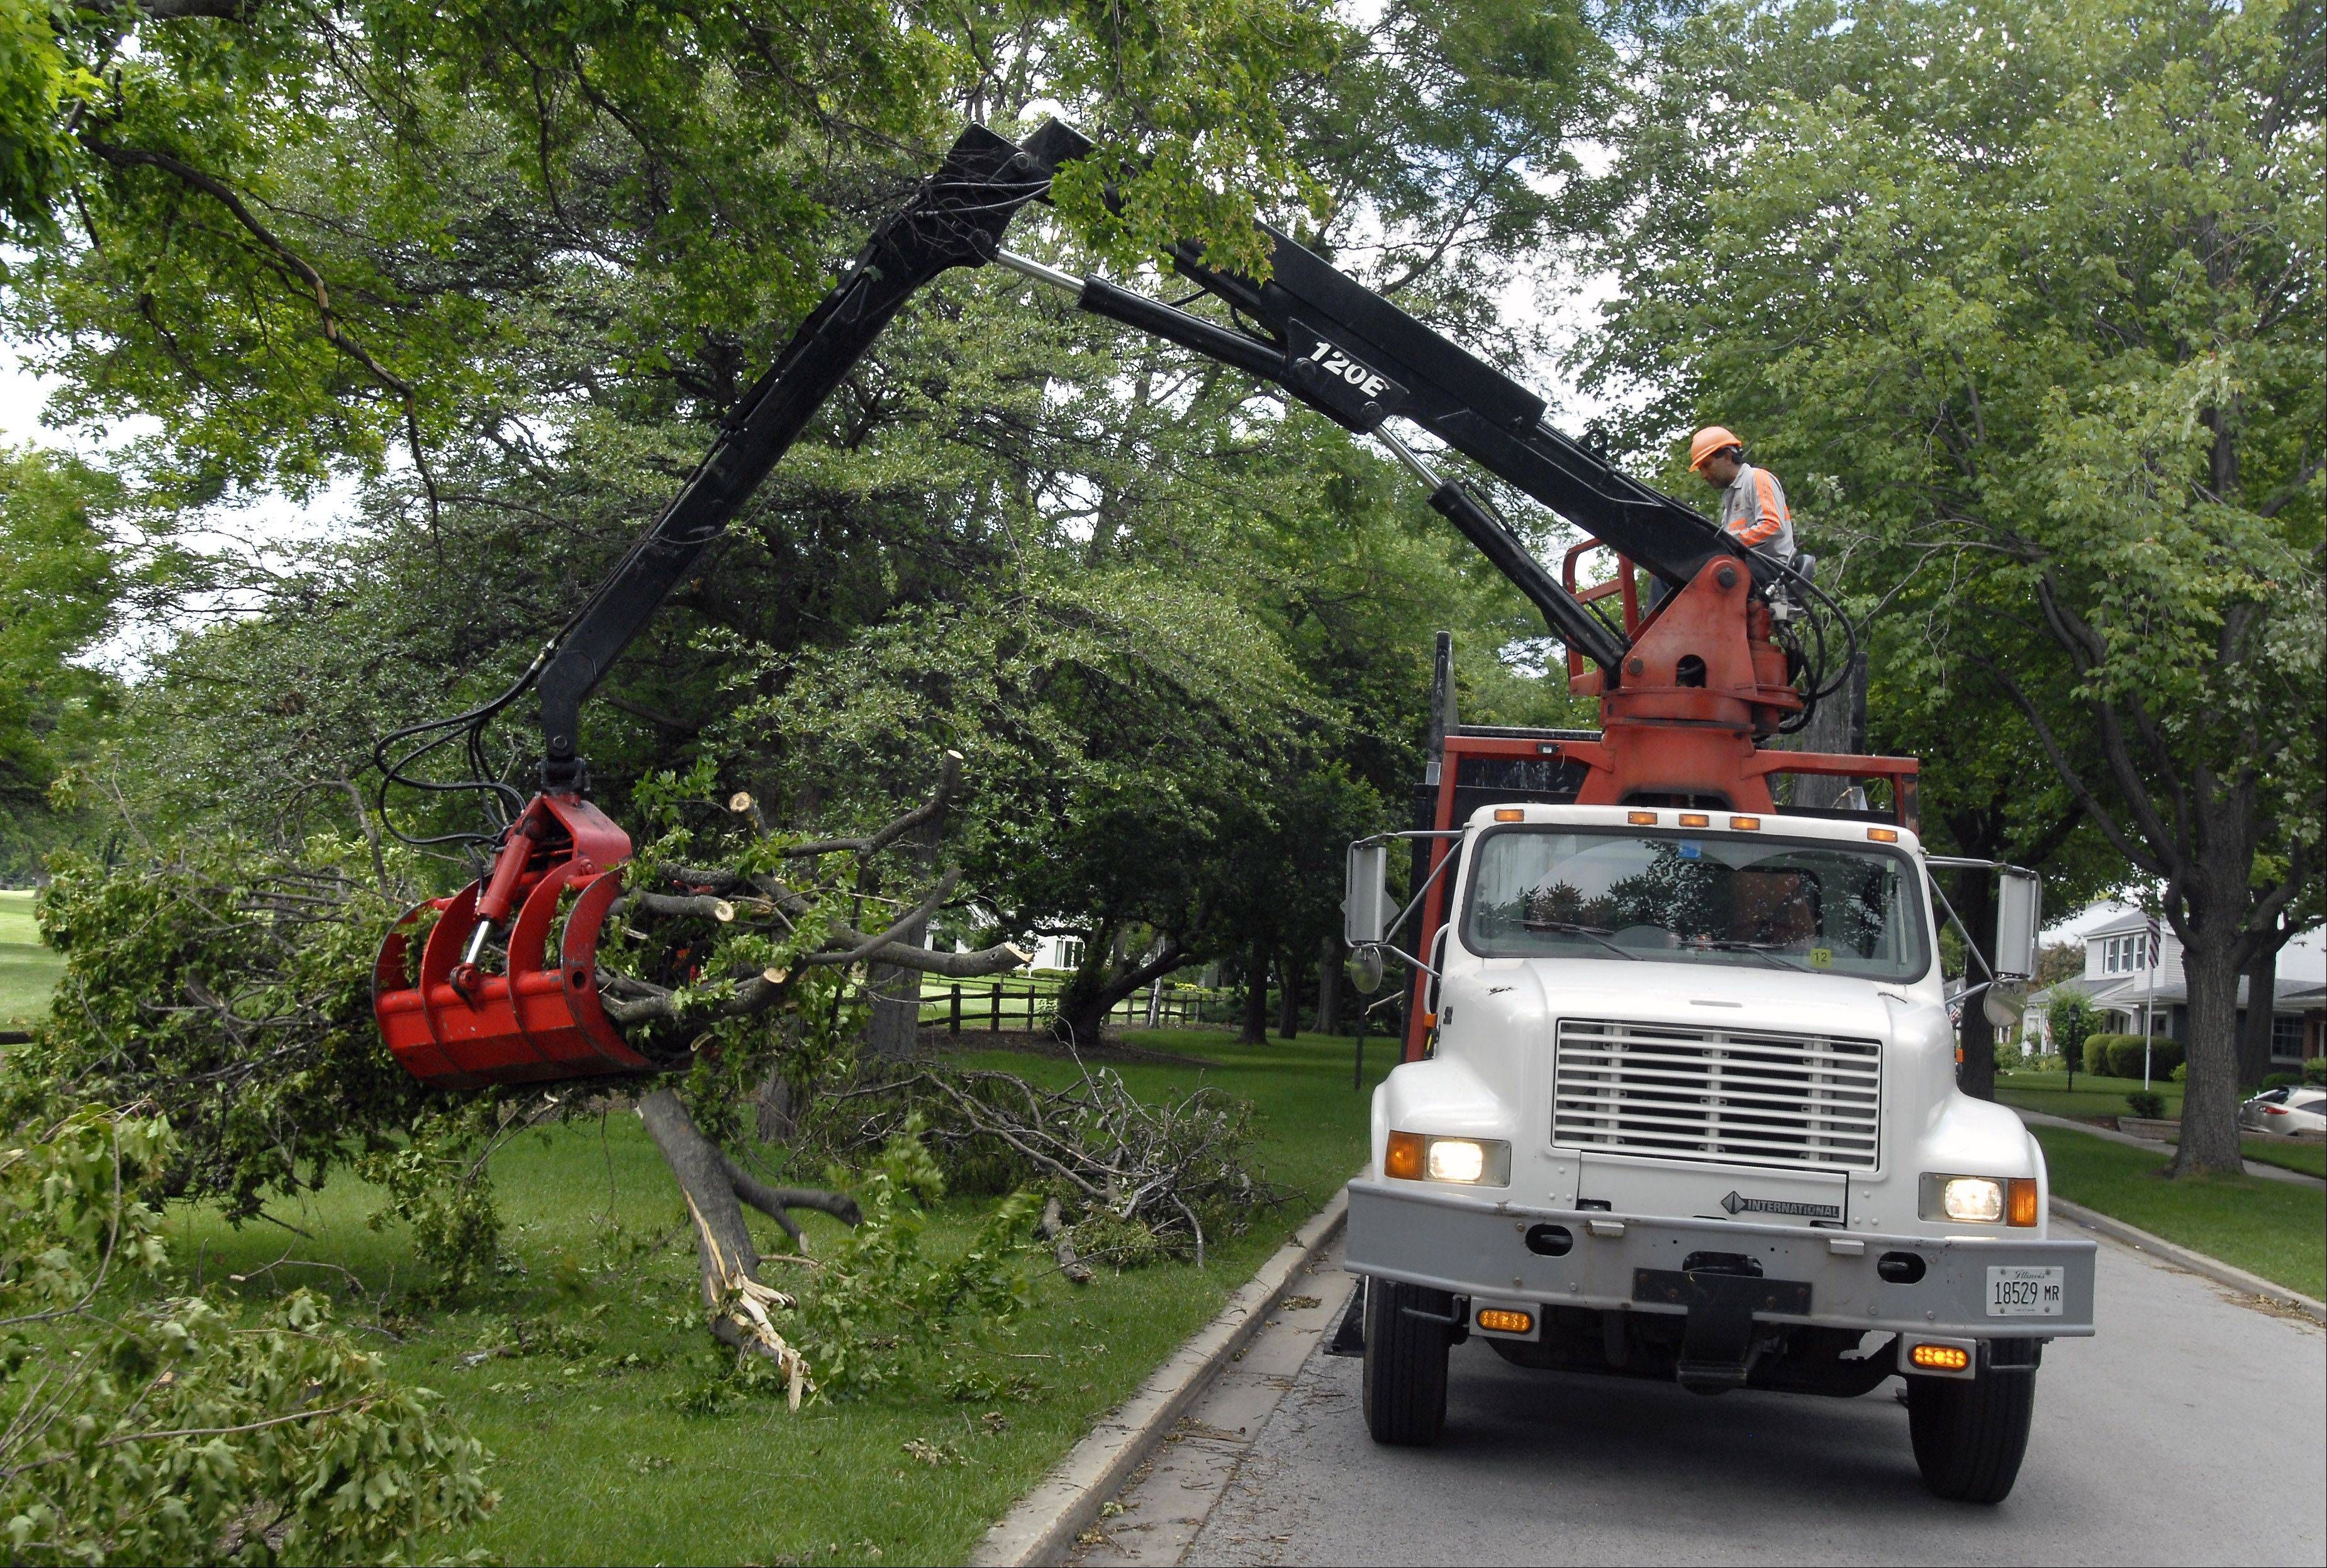 Workers for a forestry firm hired by Mount Prospect pick up tree limbs and trunks on We Go Trail Avenue, debris left from a tornado in June 2011. Village officials say the cost of such work could increase under a stricter application of the state's prevailing wage law.